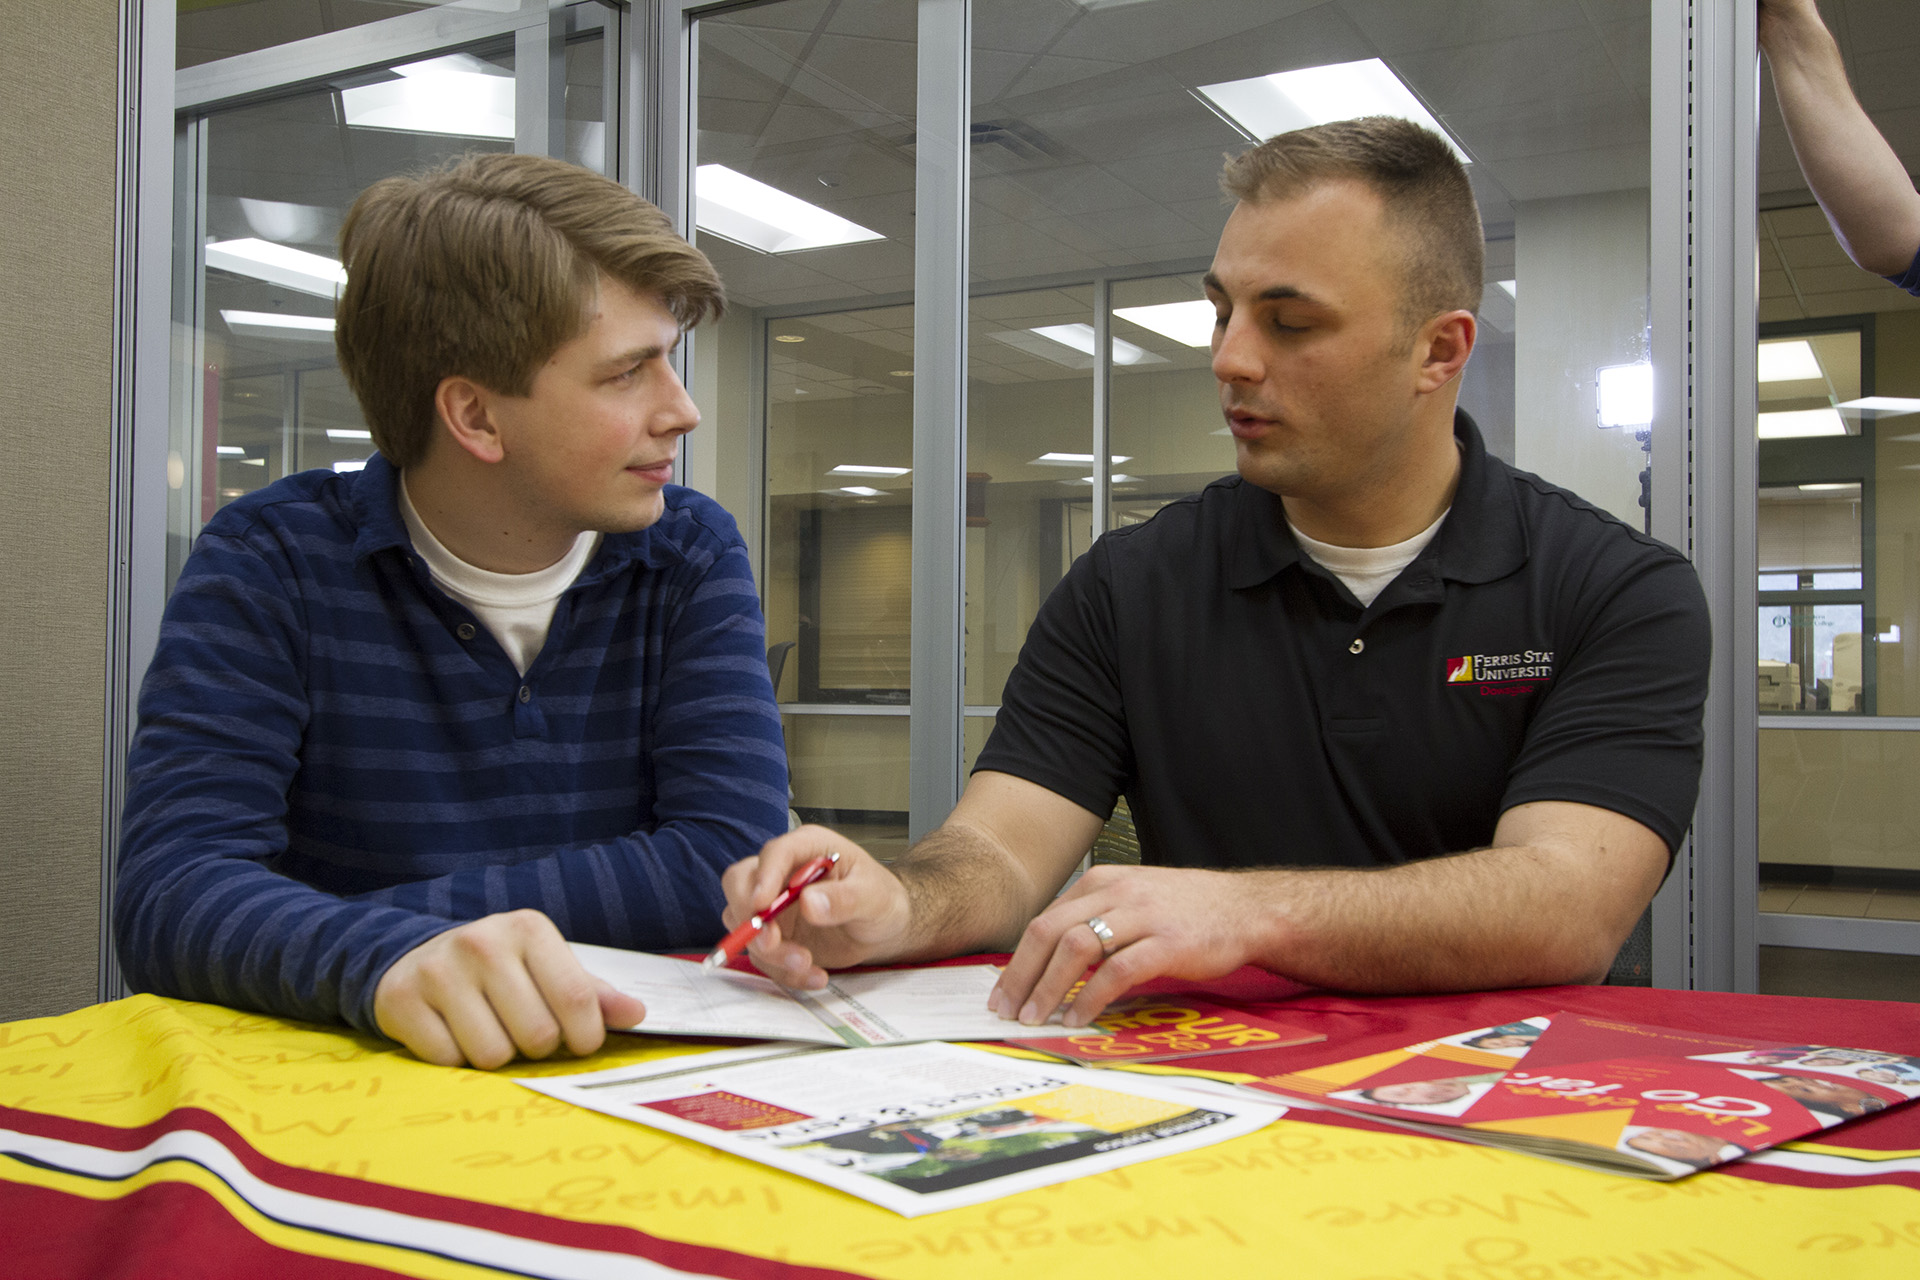 A Ferris State University transfer advisor meets with a student